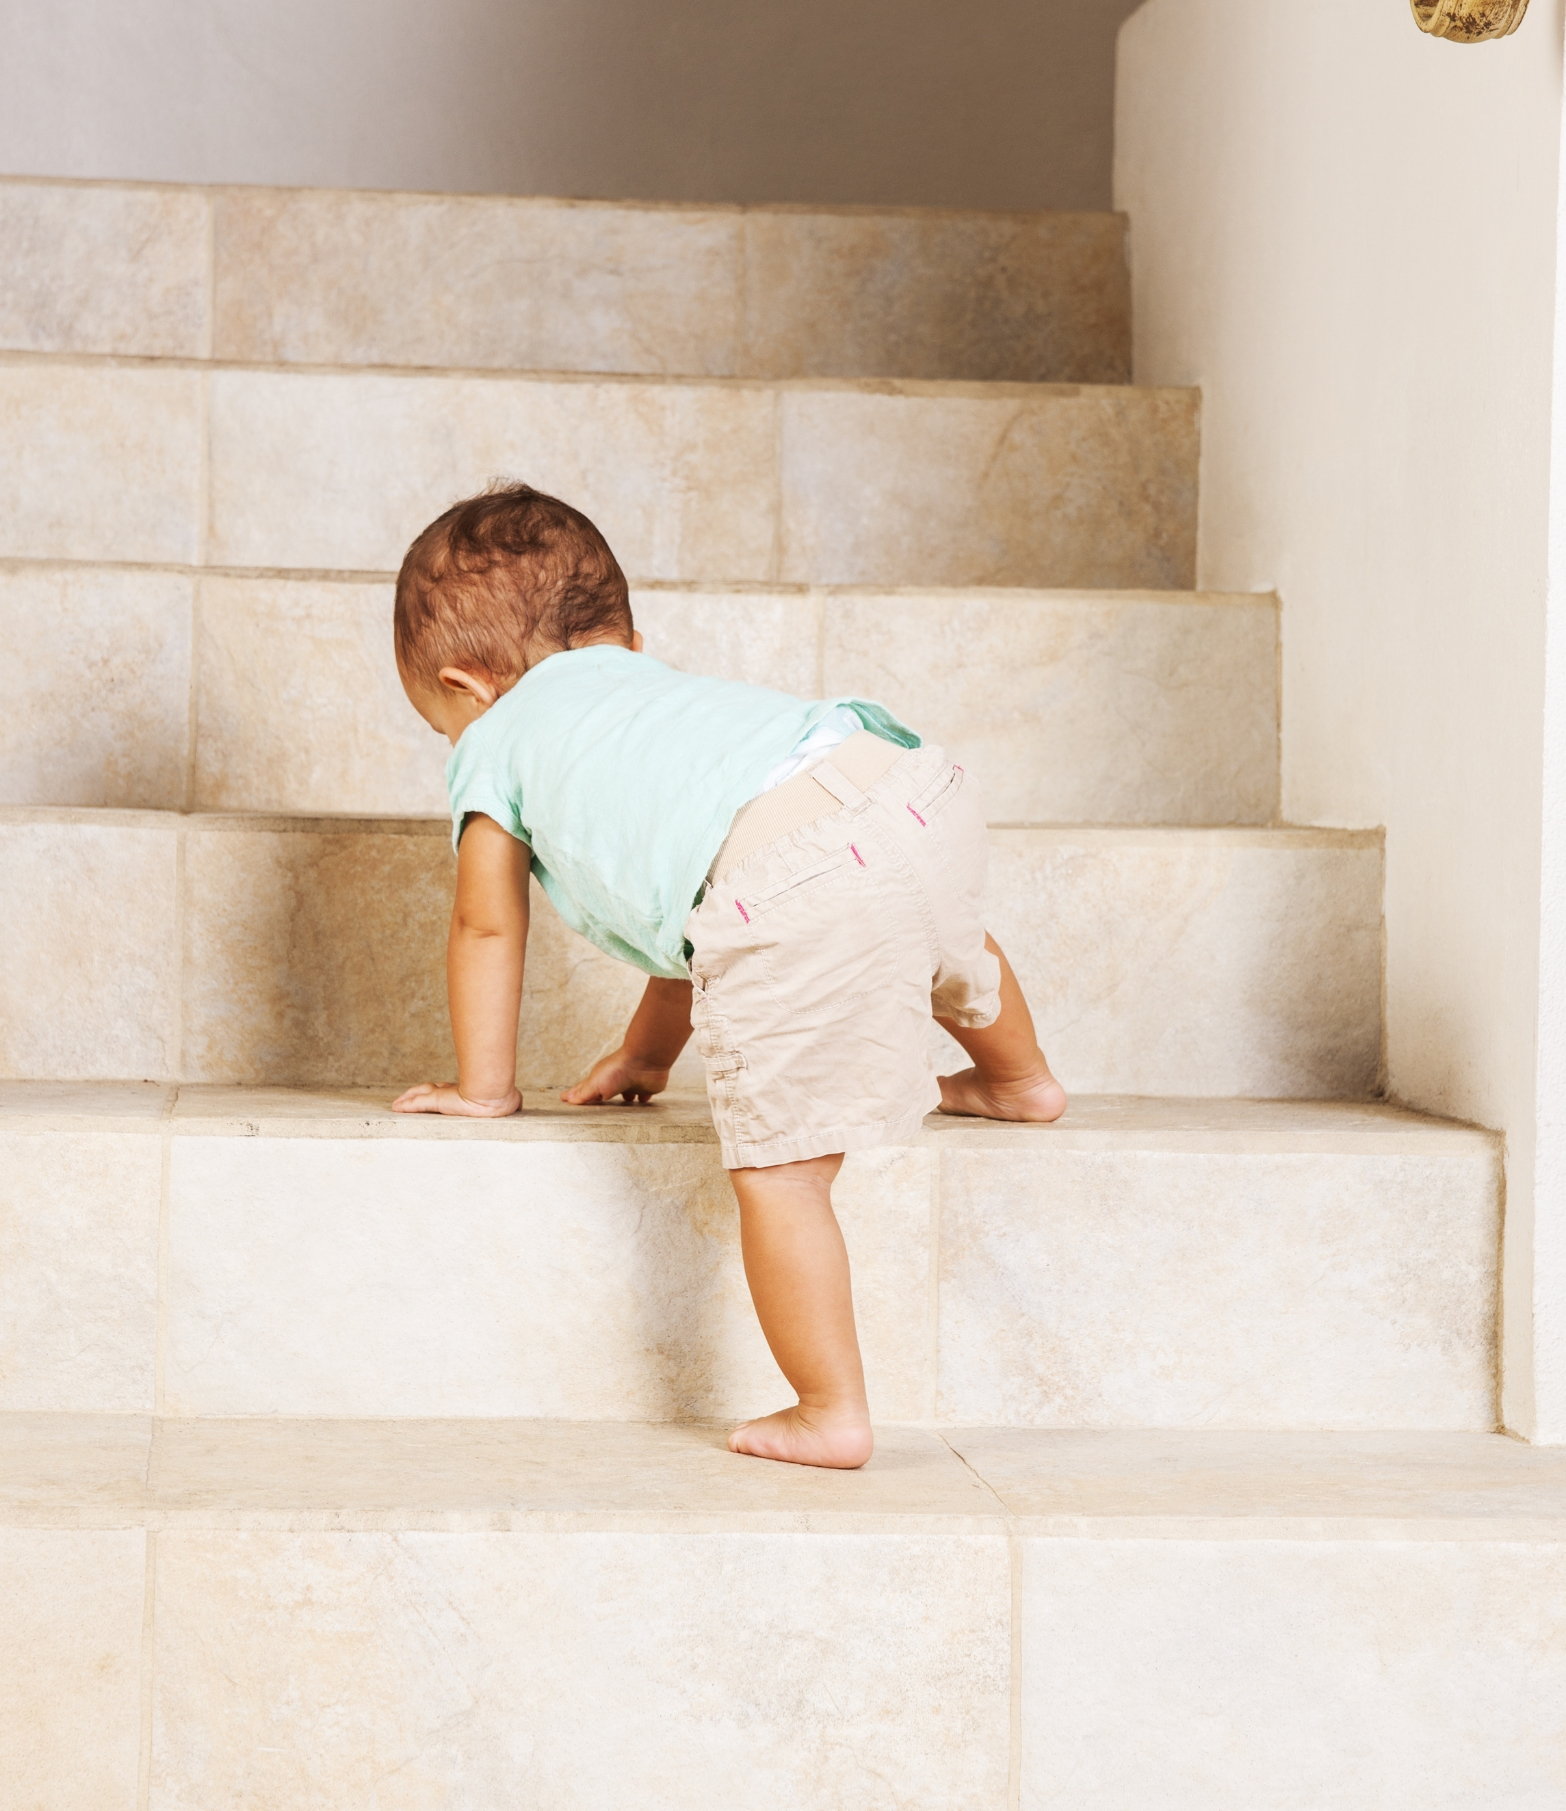 Preventing falls down the stairs with stair gates for babies.